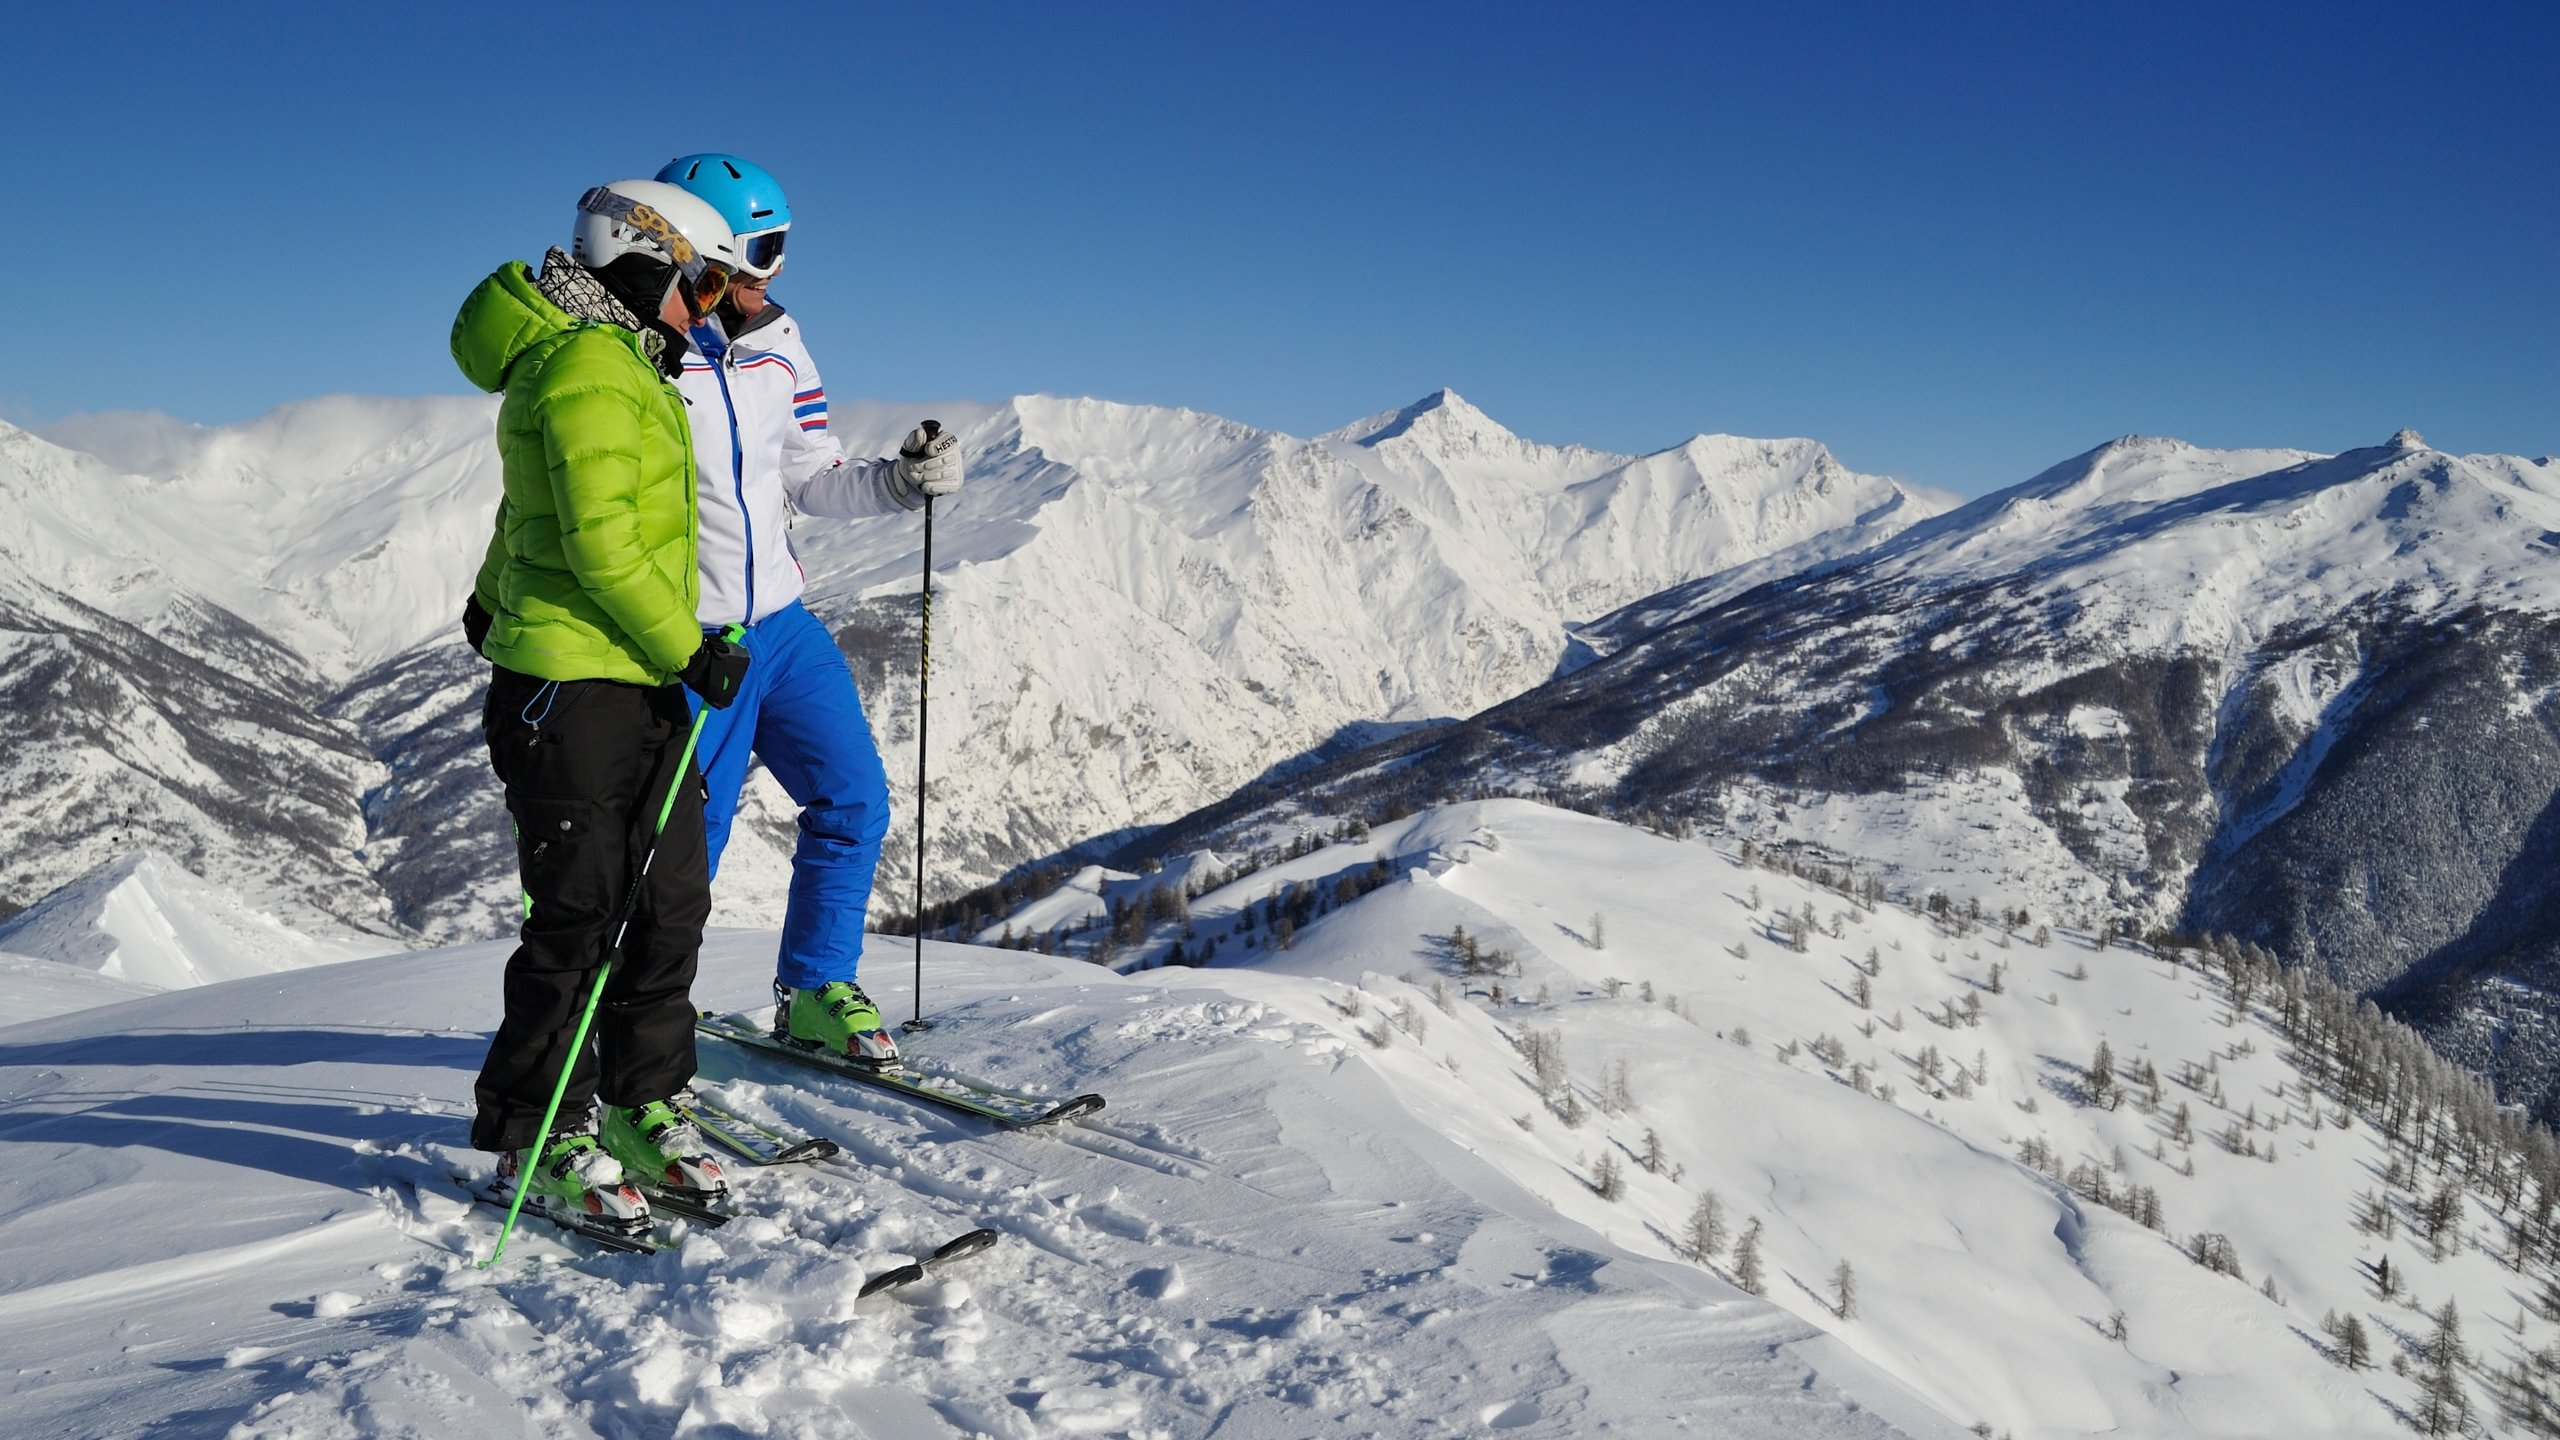 10 best ski hotels in piedmont alps for 2019 | expedia